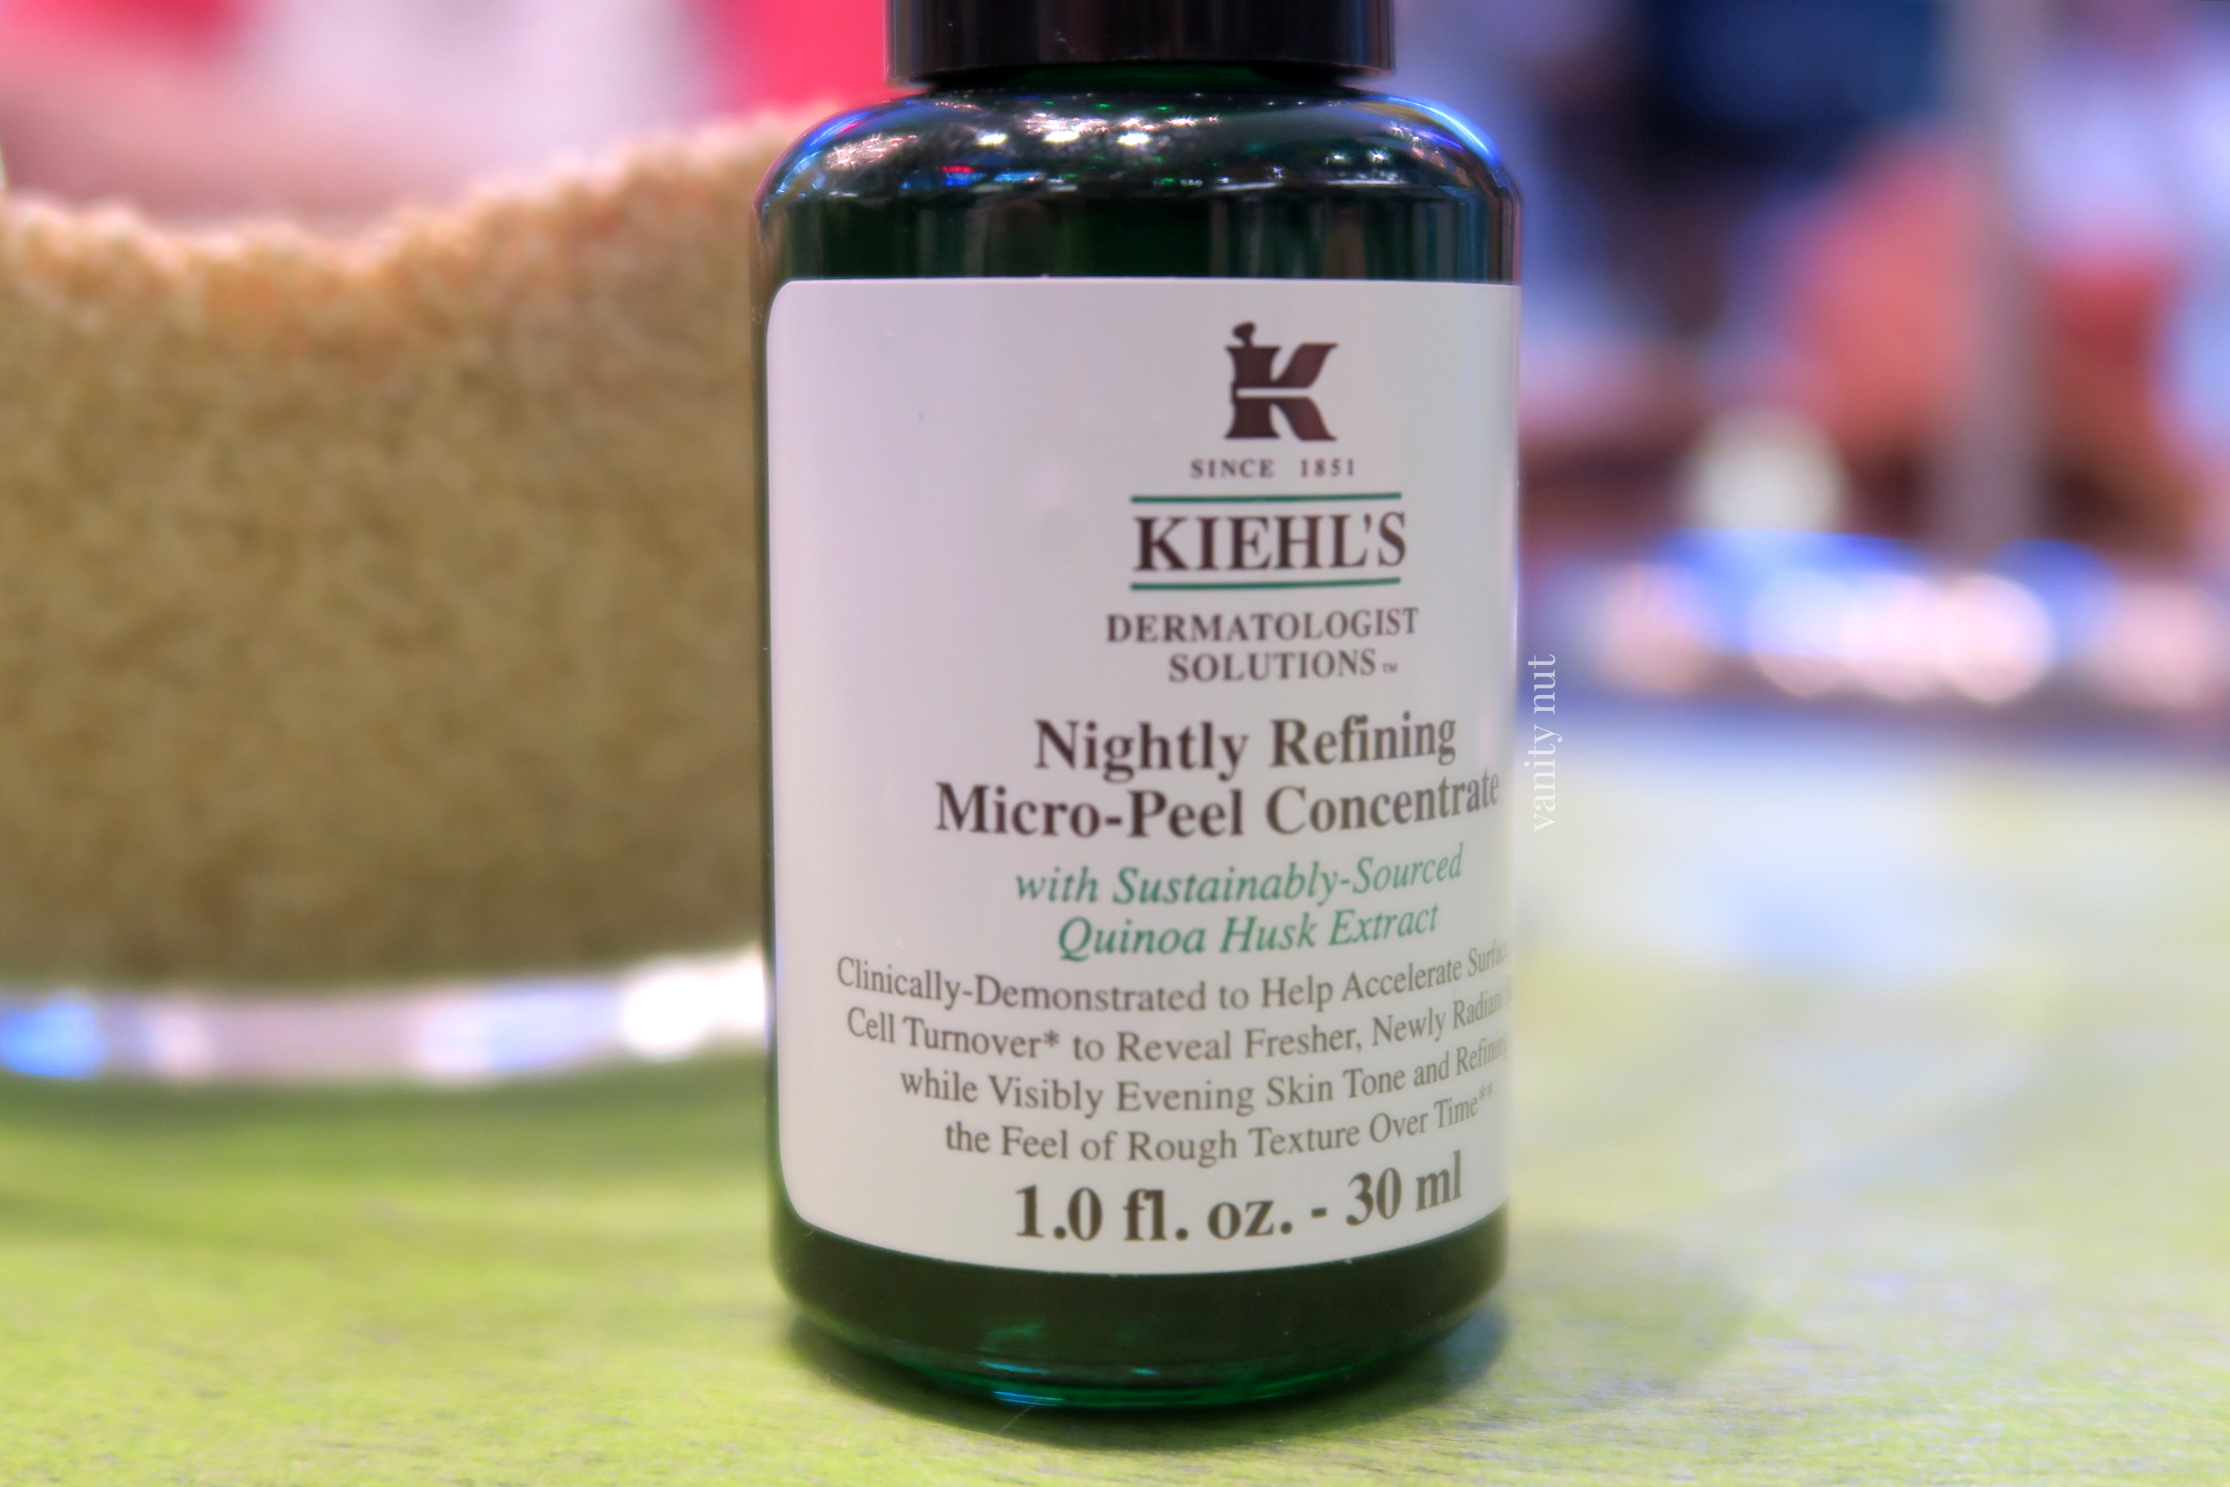 Nightly_Refining_MicroPeel_Concentrate _Kiehl's_quinoa